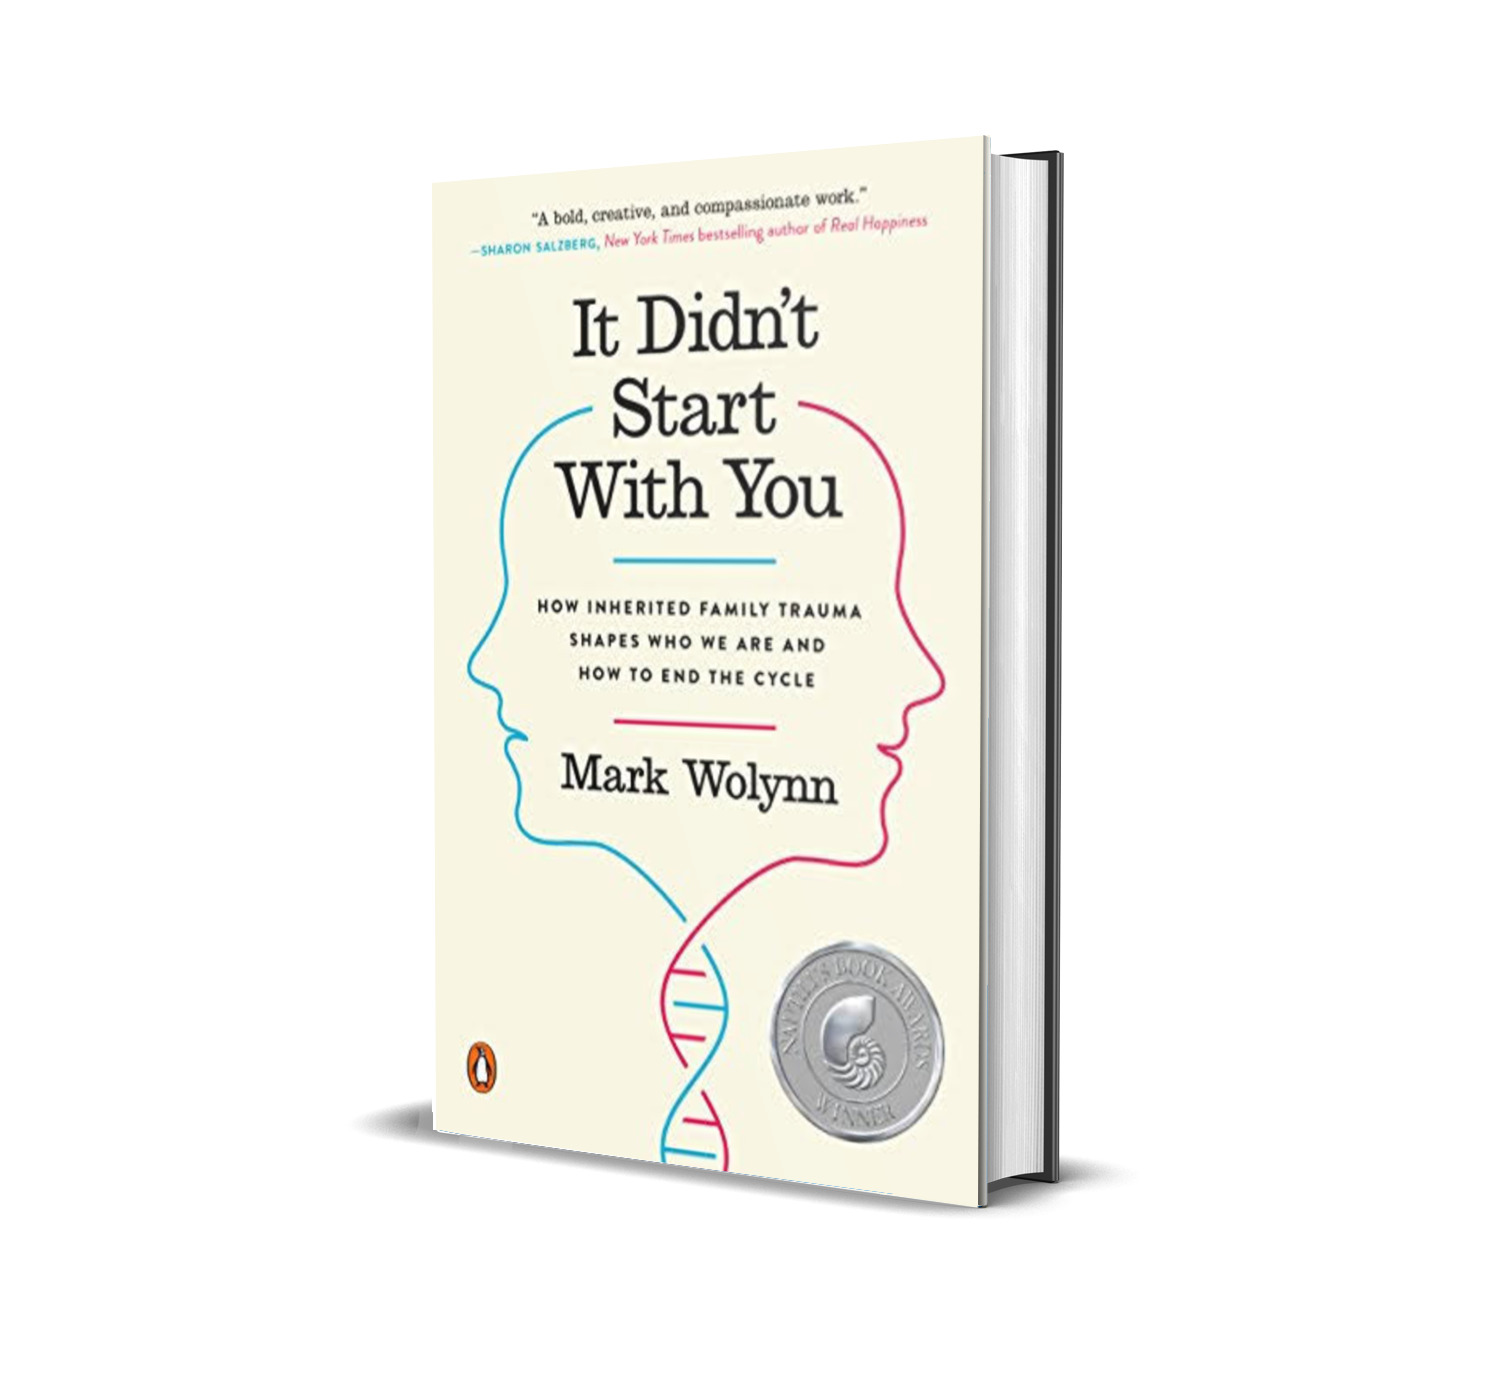 It didn't start with you- Mark Wolynn